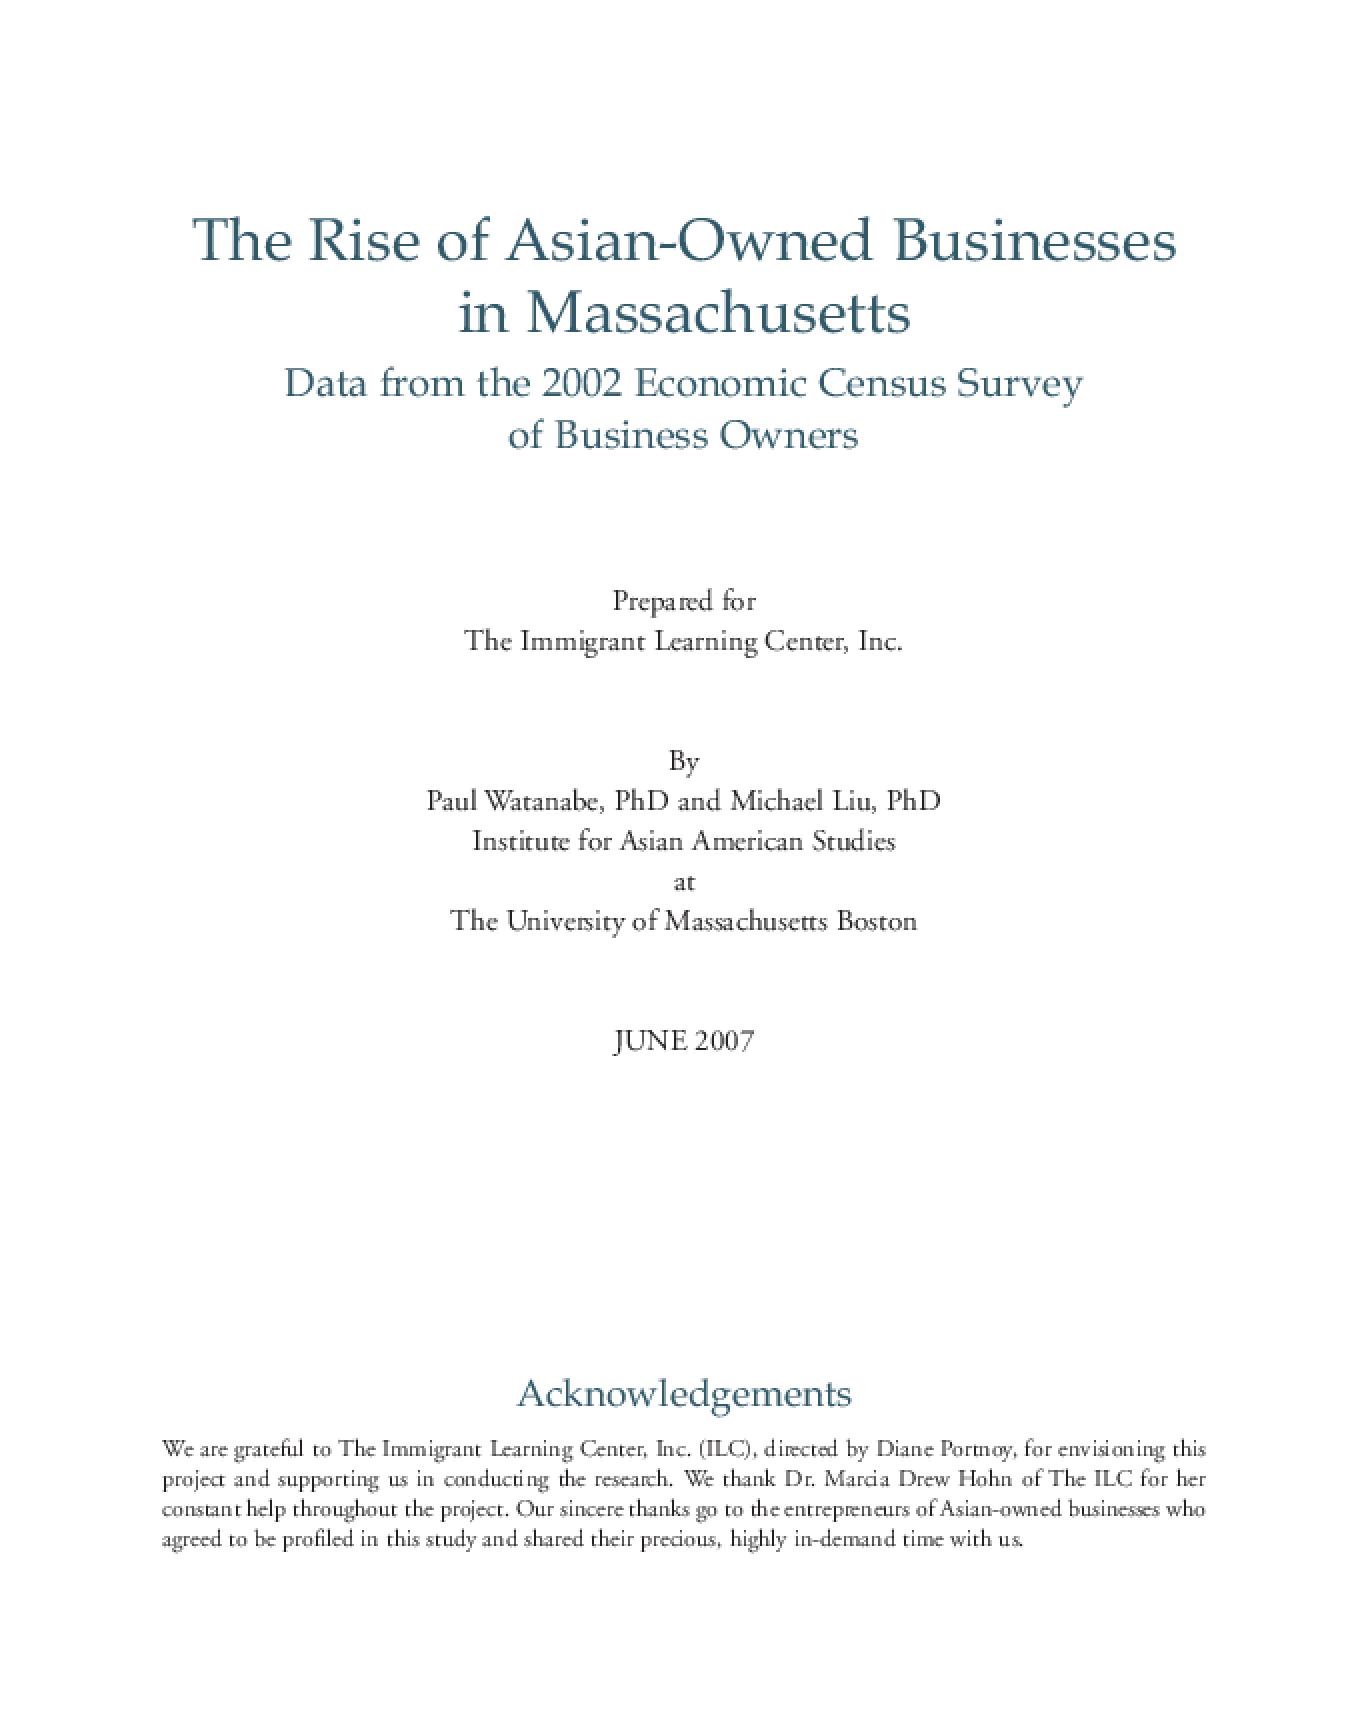 The Rise of Asian-Owned Businesses in Massachusetts